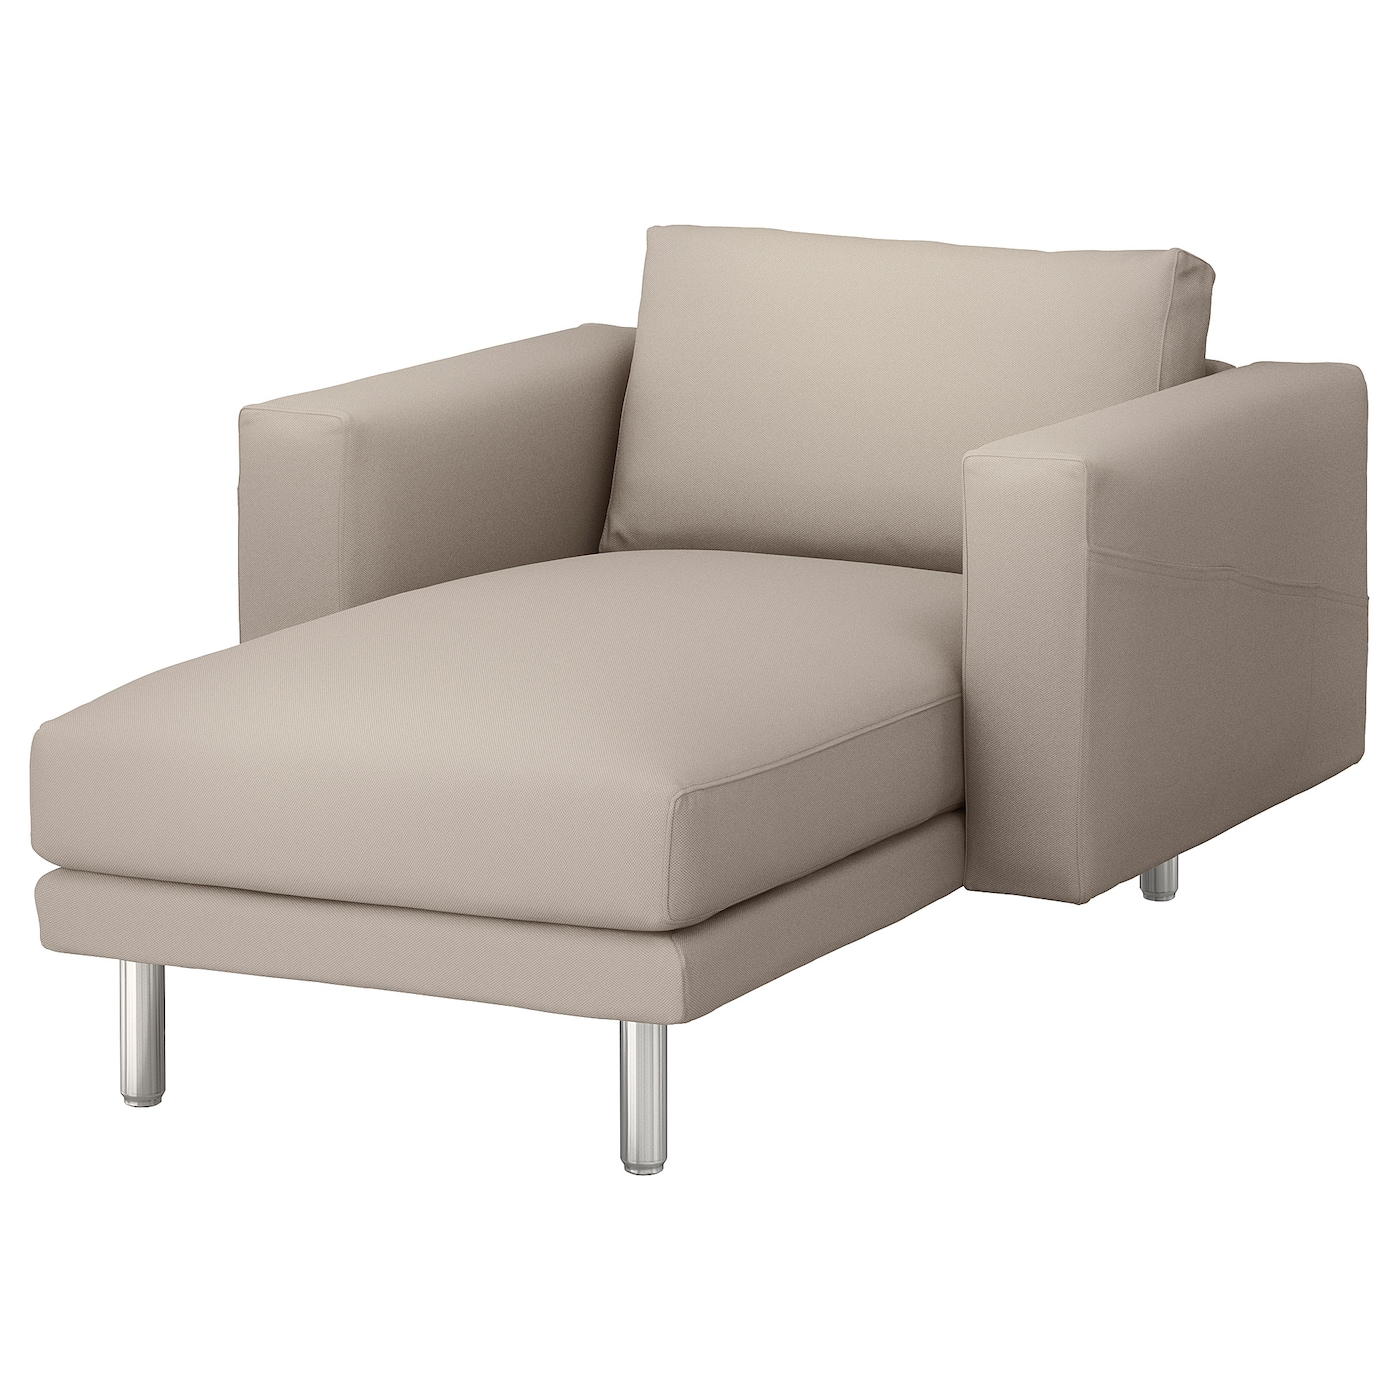 Chaise lounge sofa ikea images for Chaise longue lounge